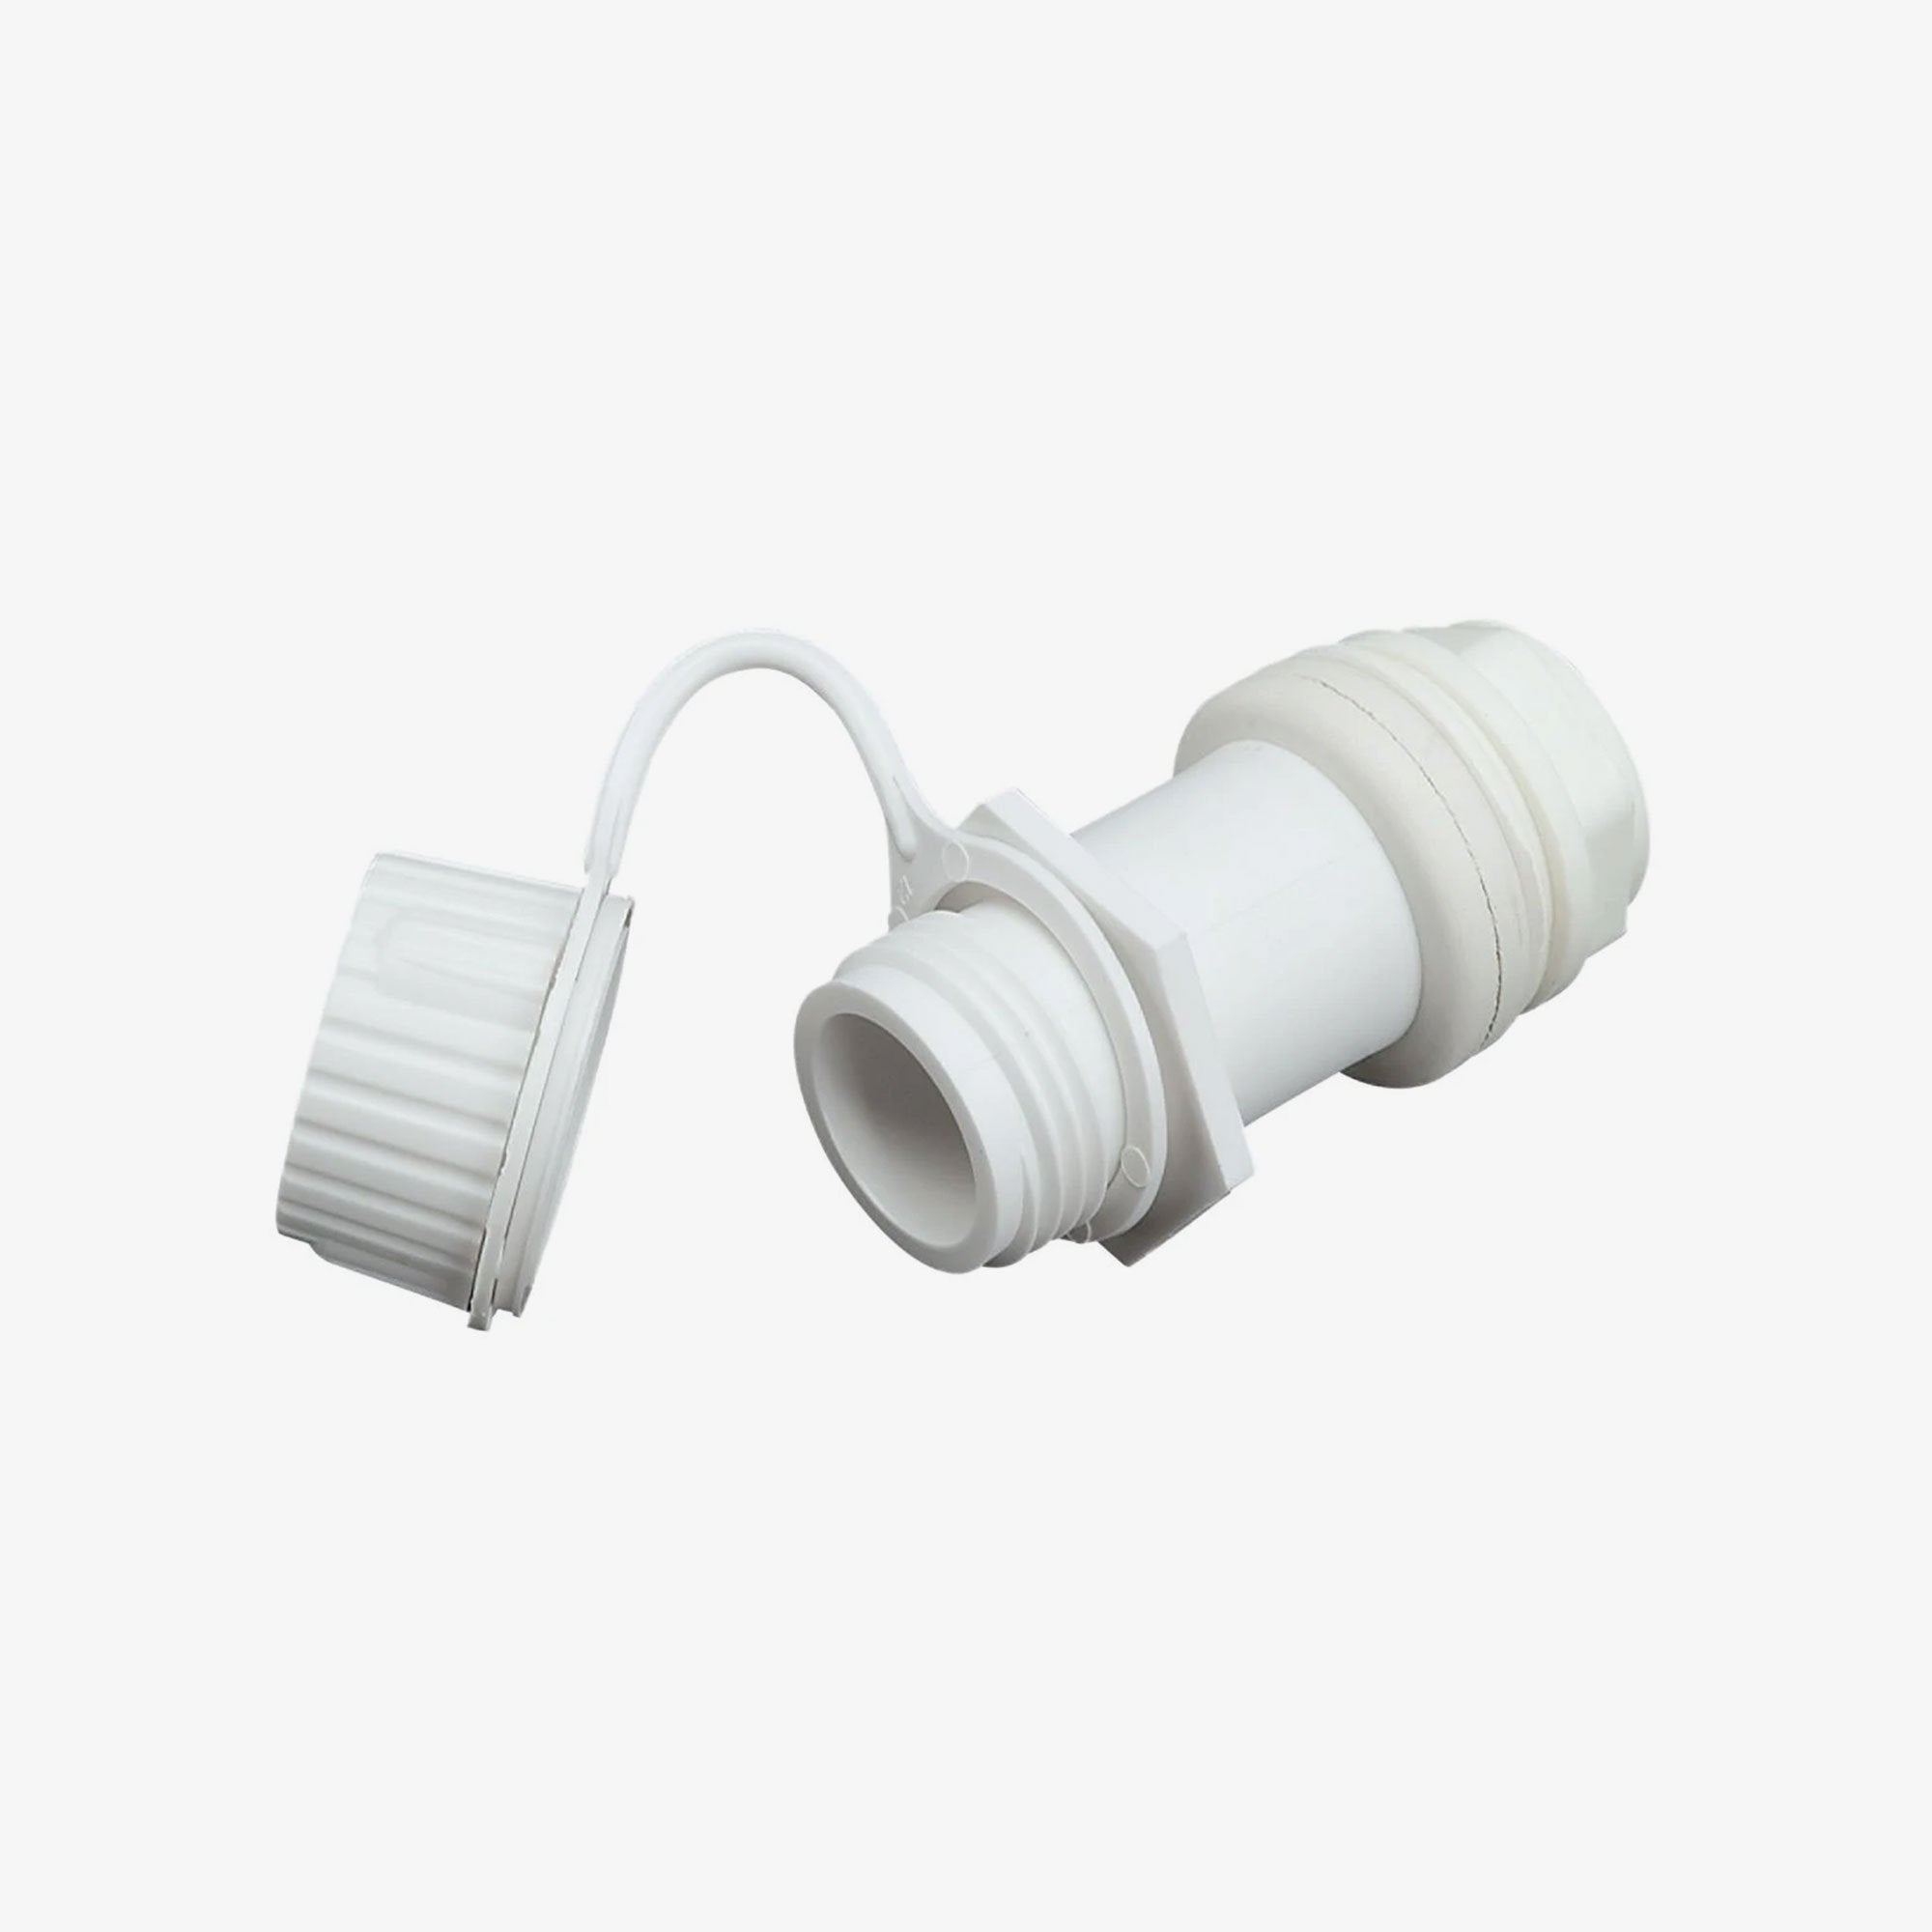 Large View | Threaded Cooler Drain Plug in White at Igloo Accessories